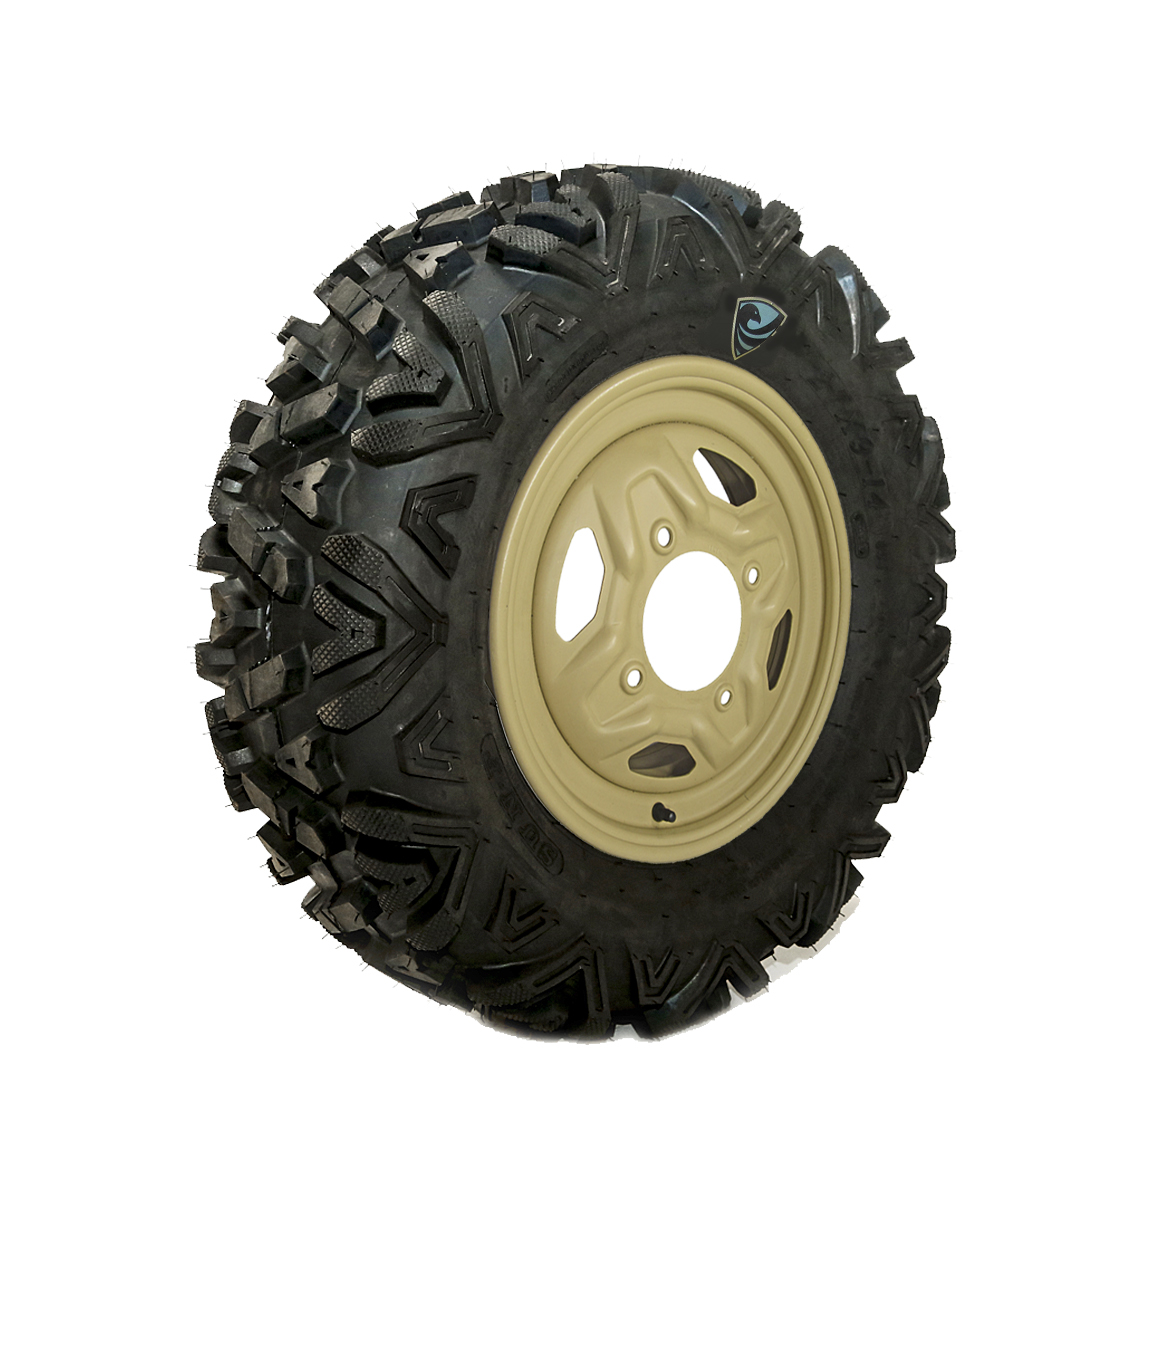 Utv Tires For Sale >> Rp Spartan Atv Utv Run Flat Tires Gps Offroad Products